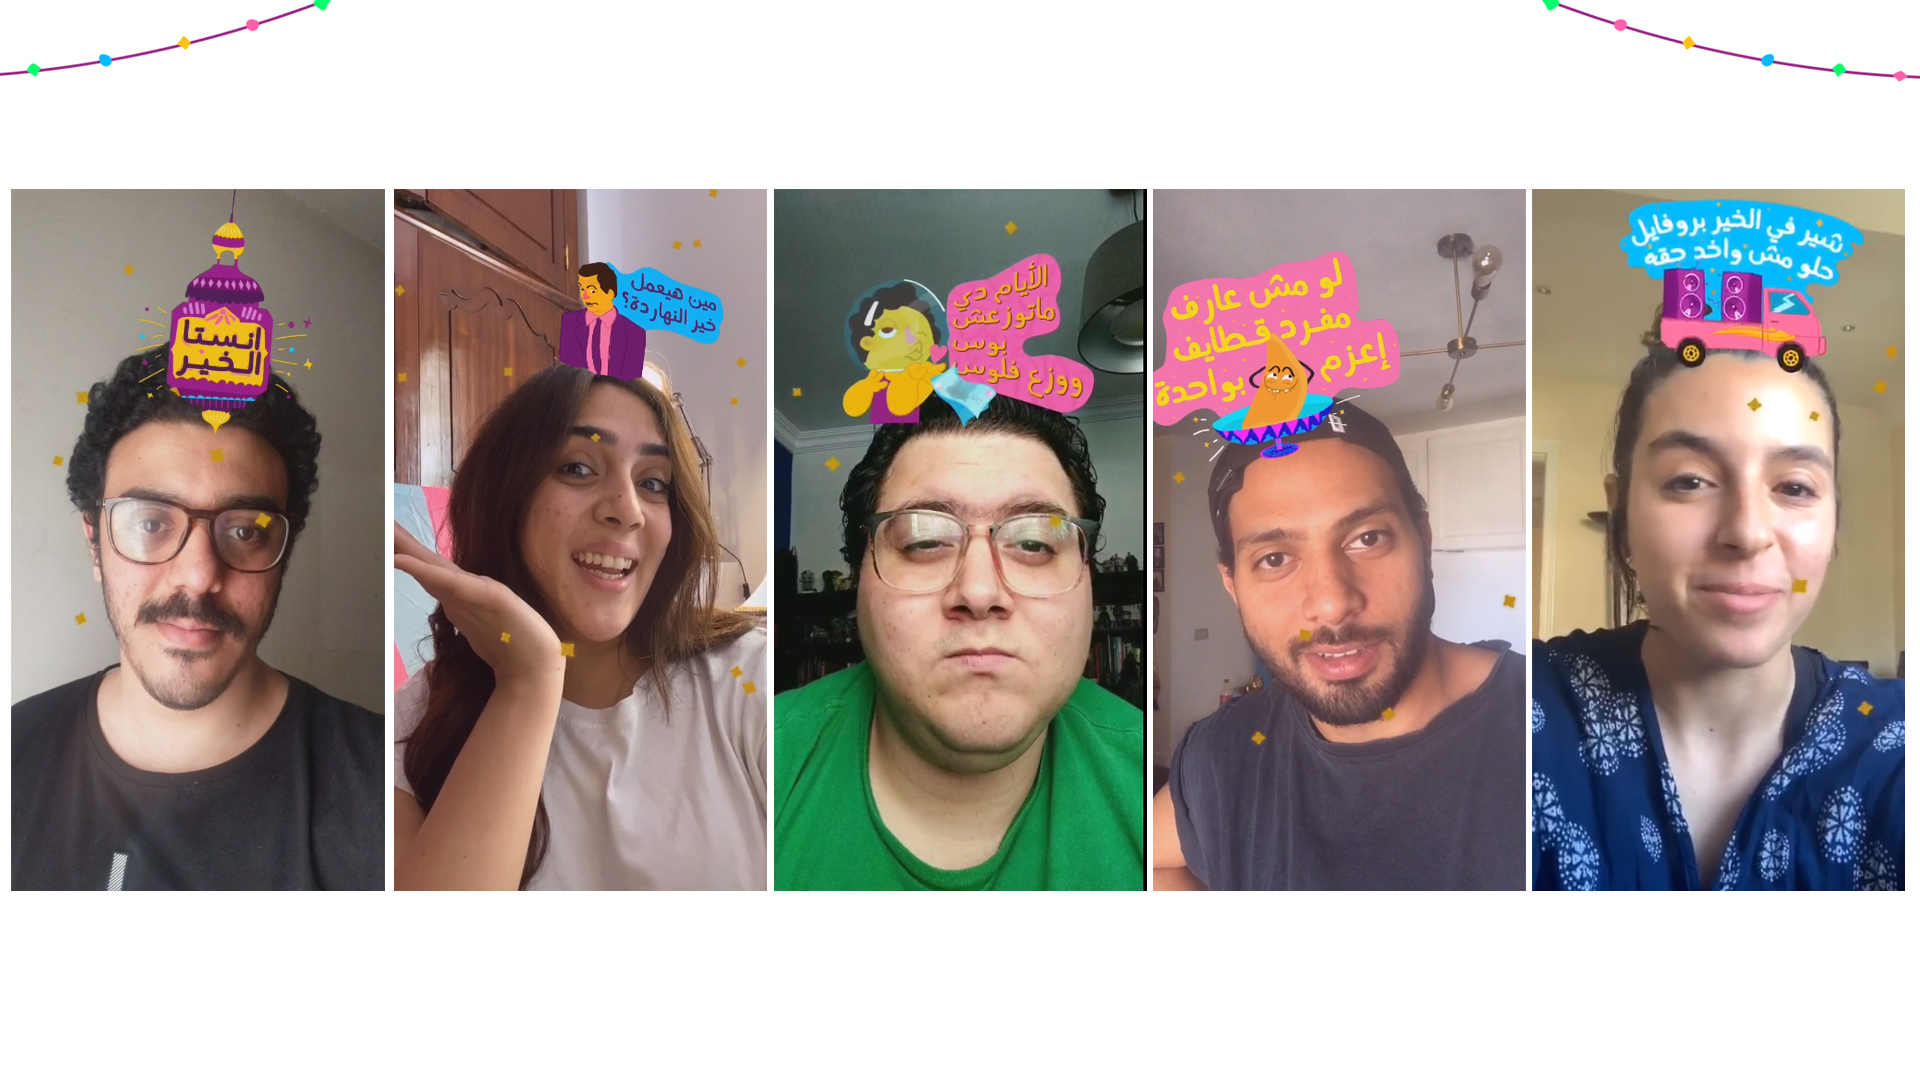 Instagram launches [InstaElKheir] AR filter for Ramadan in collaboration with 'Peace Cake'